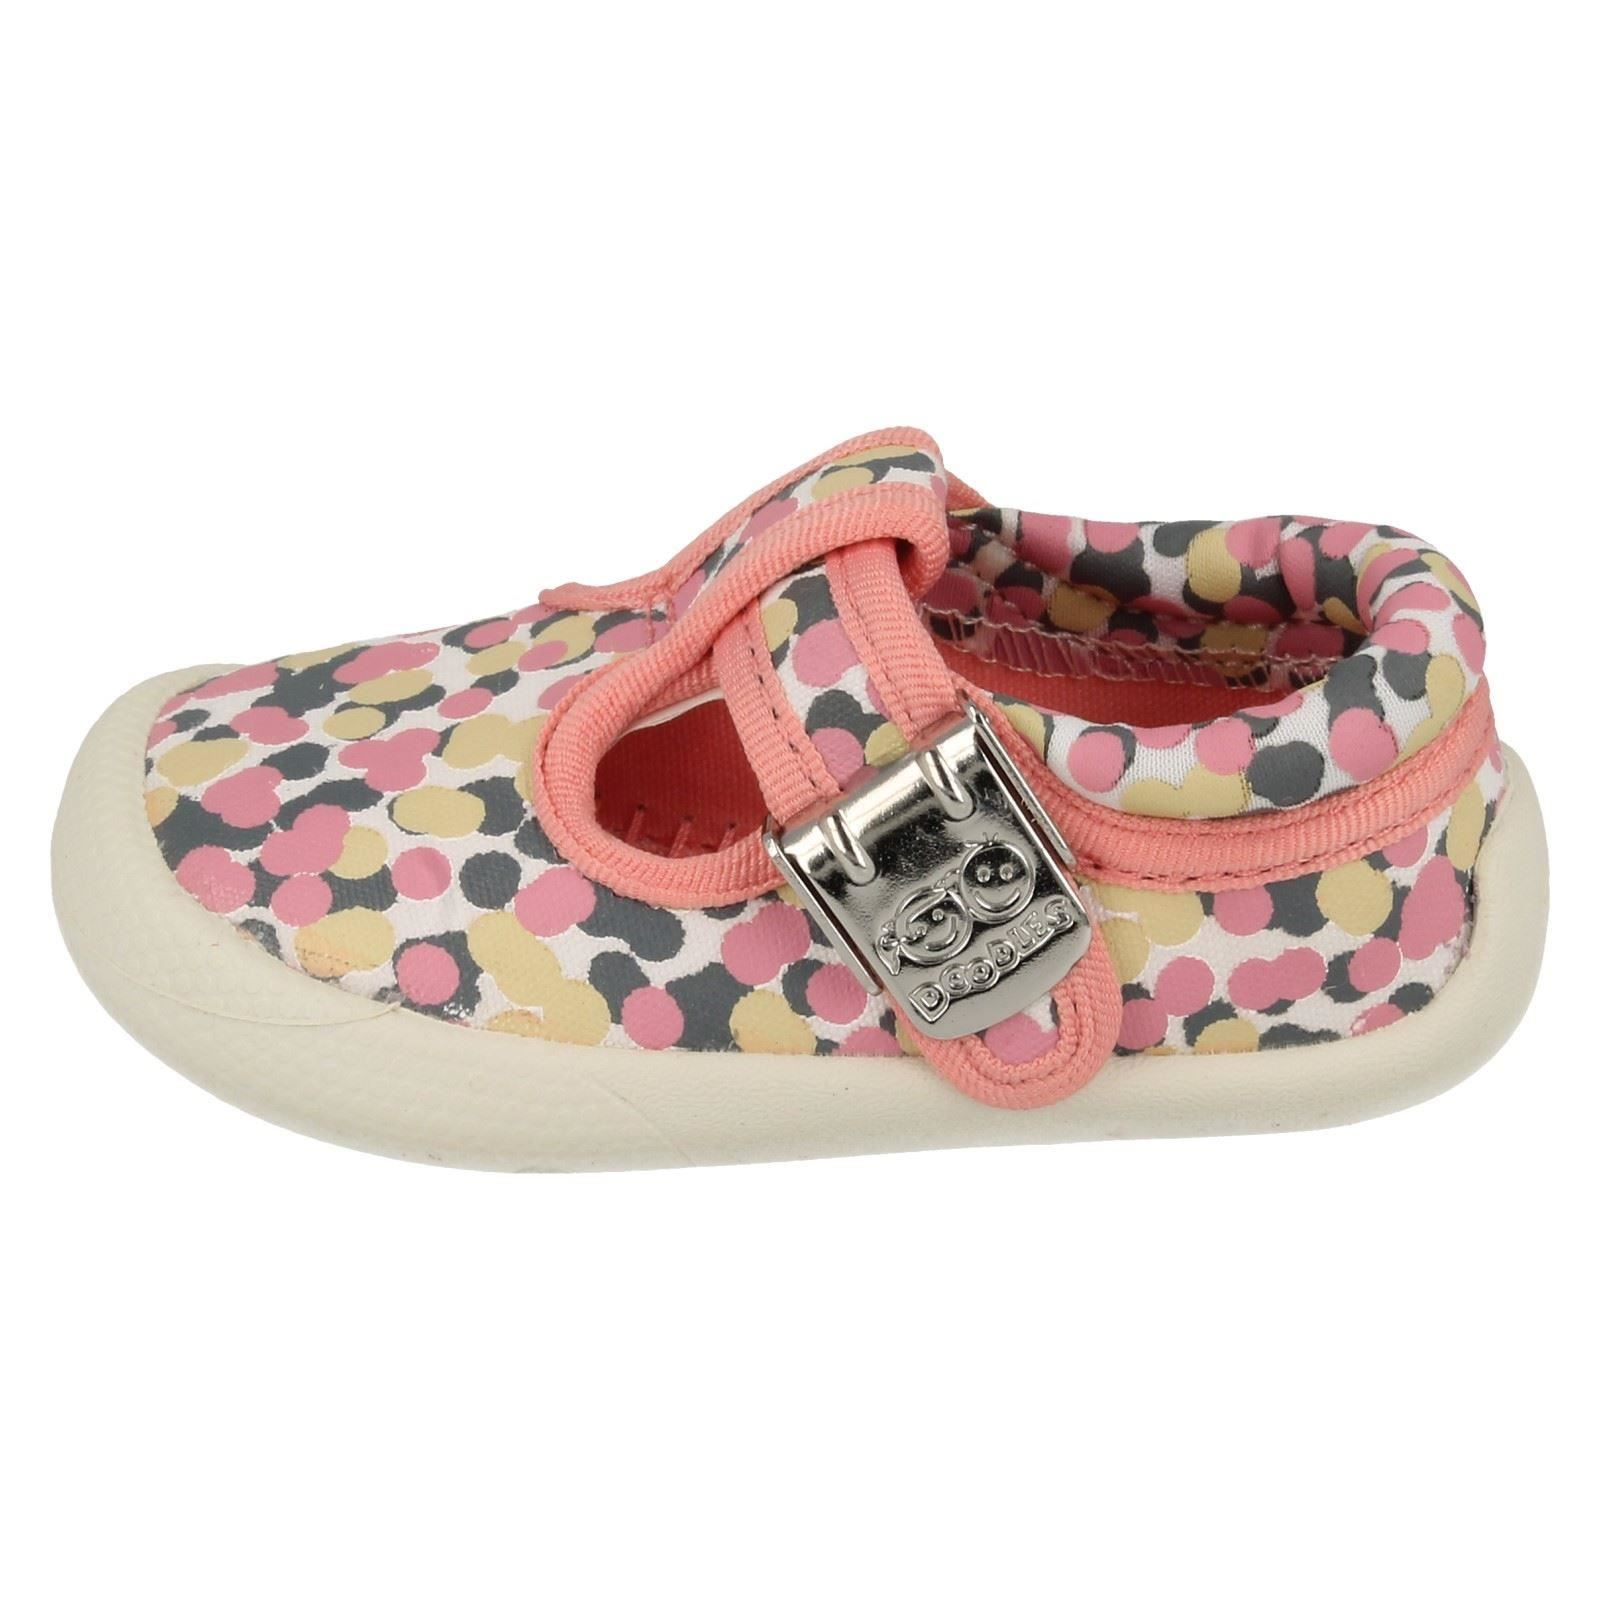 94f67c5b6a89 Girls Clarks Canvas Shoes Label Choc Cake Pink   Multi G 3. About this  product. Picture 1 of 10  Picture 2 of 10  Picture 3 of 10 ...